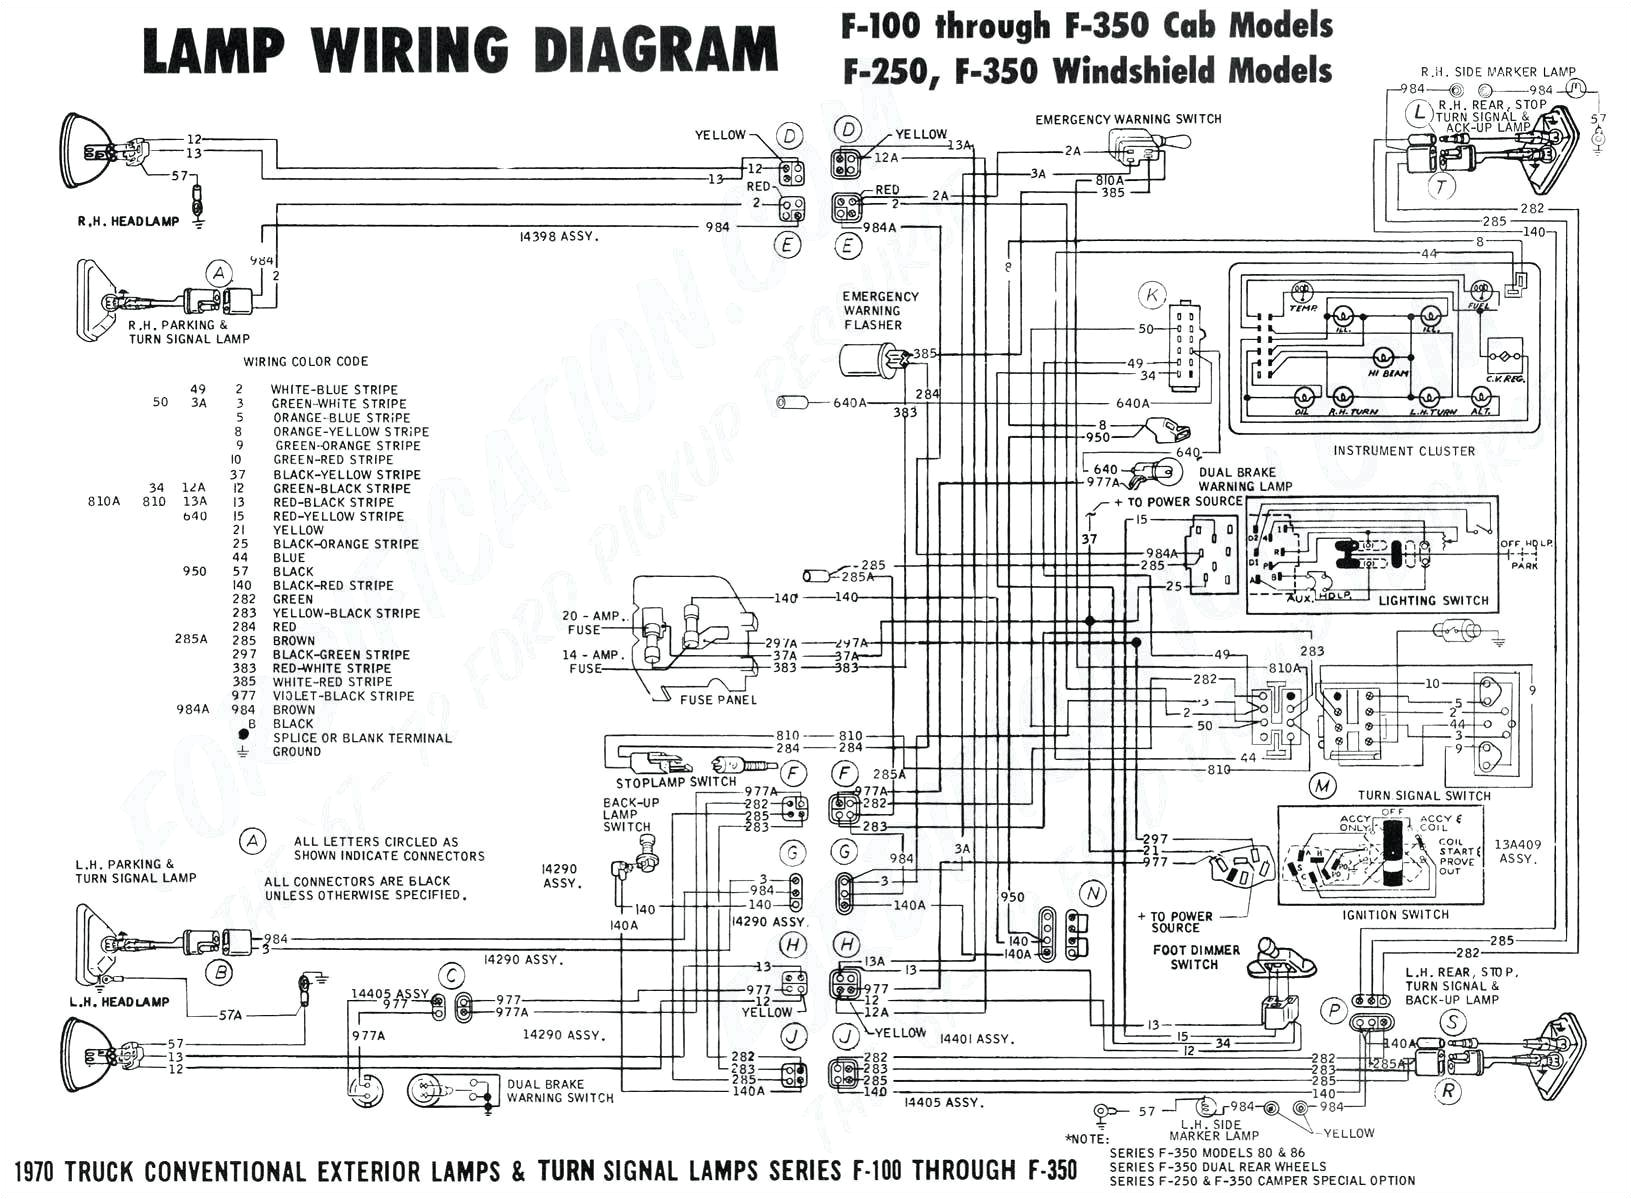 4 Wire Trailer Hitch Wiring Diagram 4 Wire Tail Light Wiring Wiring Diagram Database